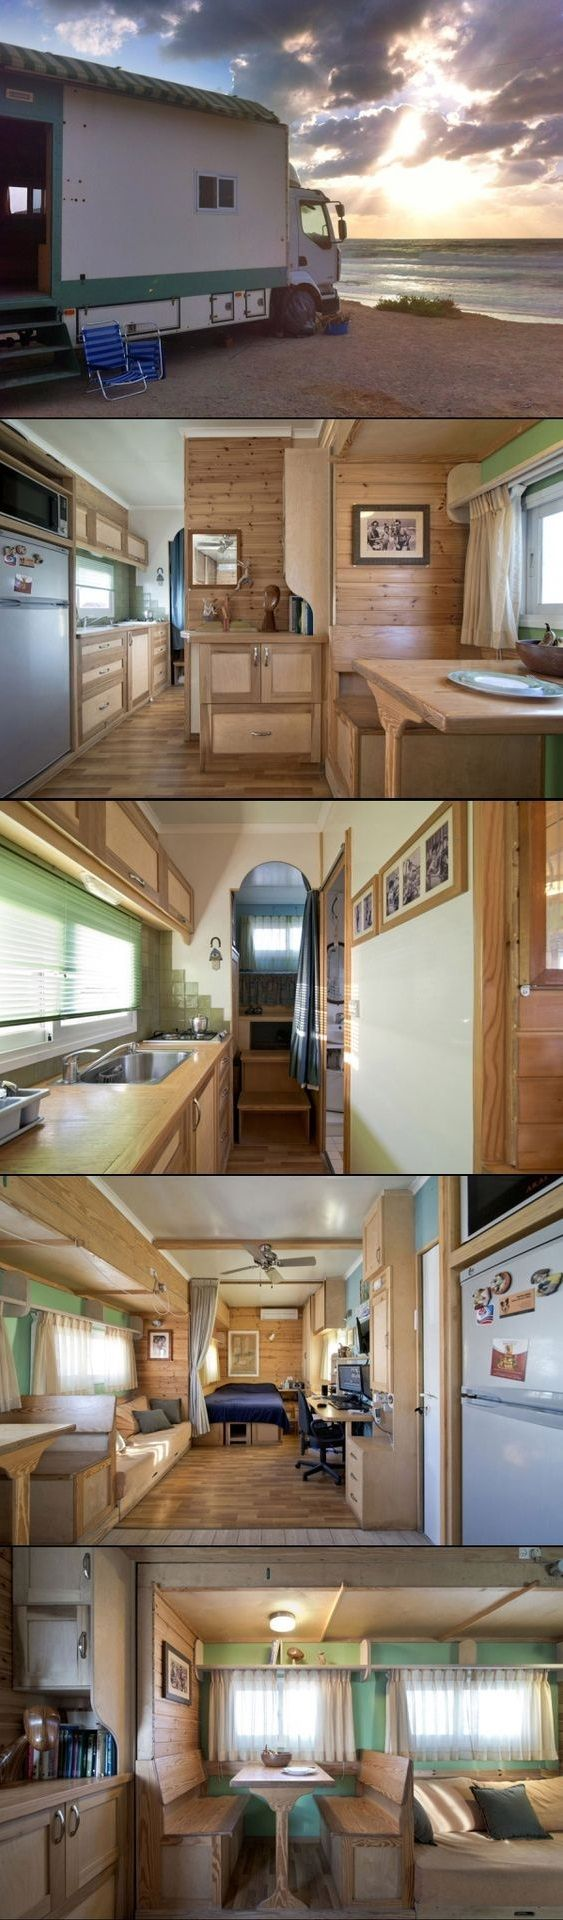 845 Best Images About Bus House On Pinterest Buses